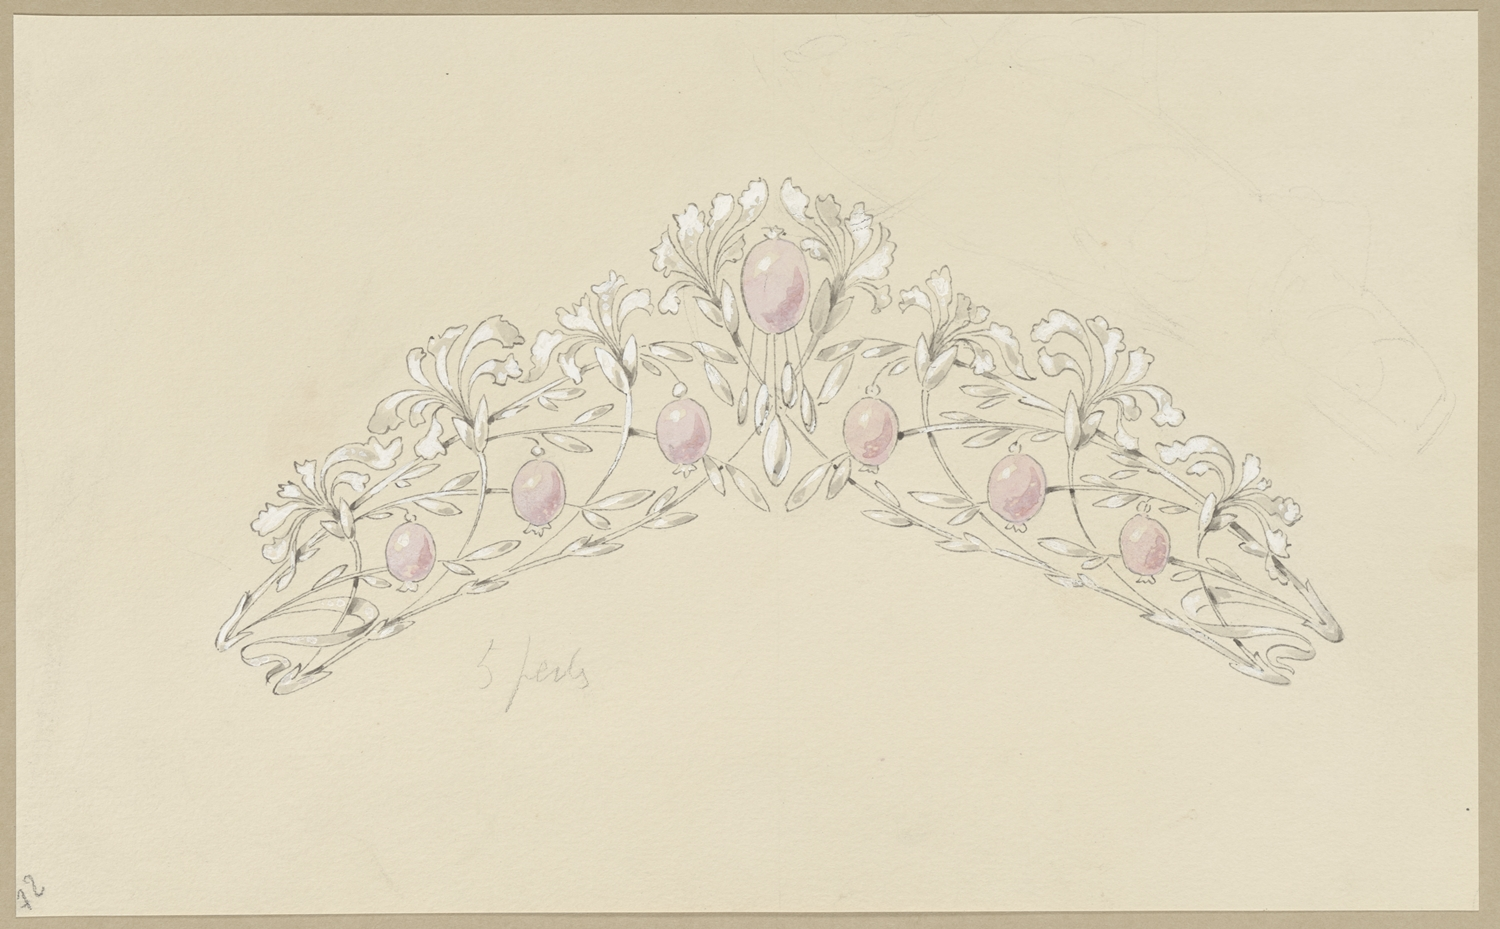 At Salon Du Dessin In Paris Chaumet Unveils Rarely Seen Drawings From Its Vaults Artnet News